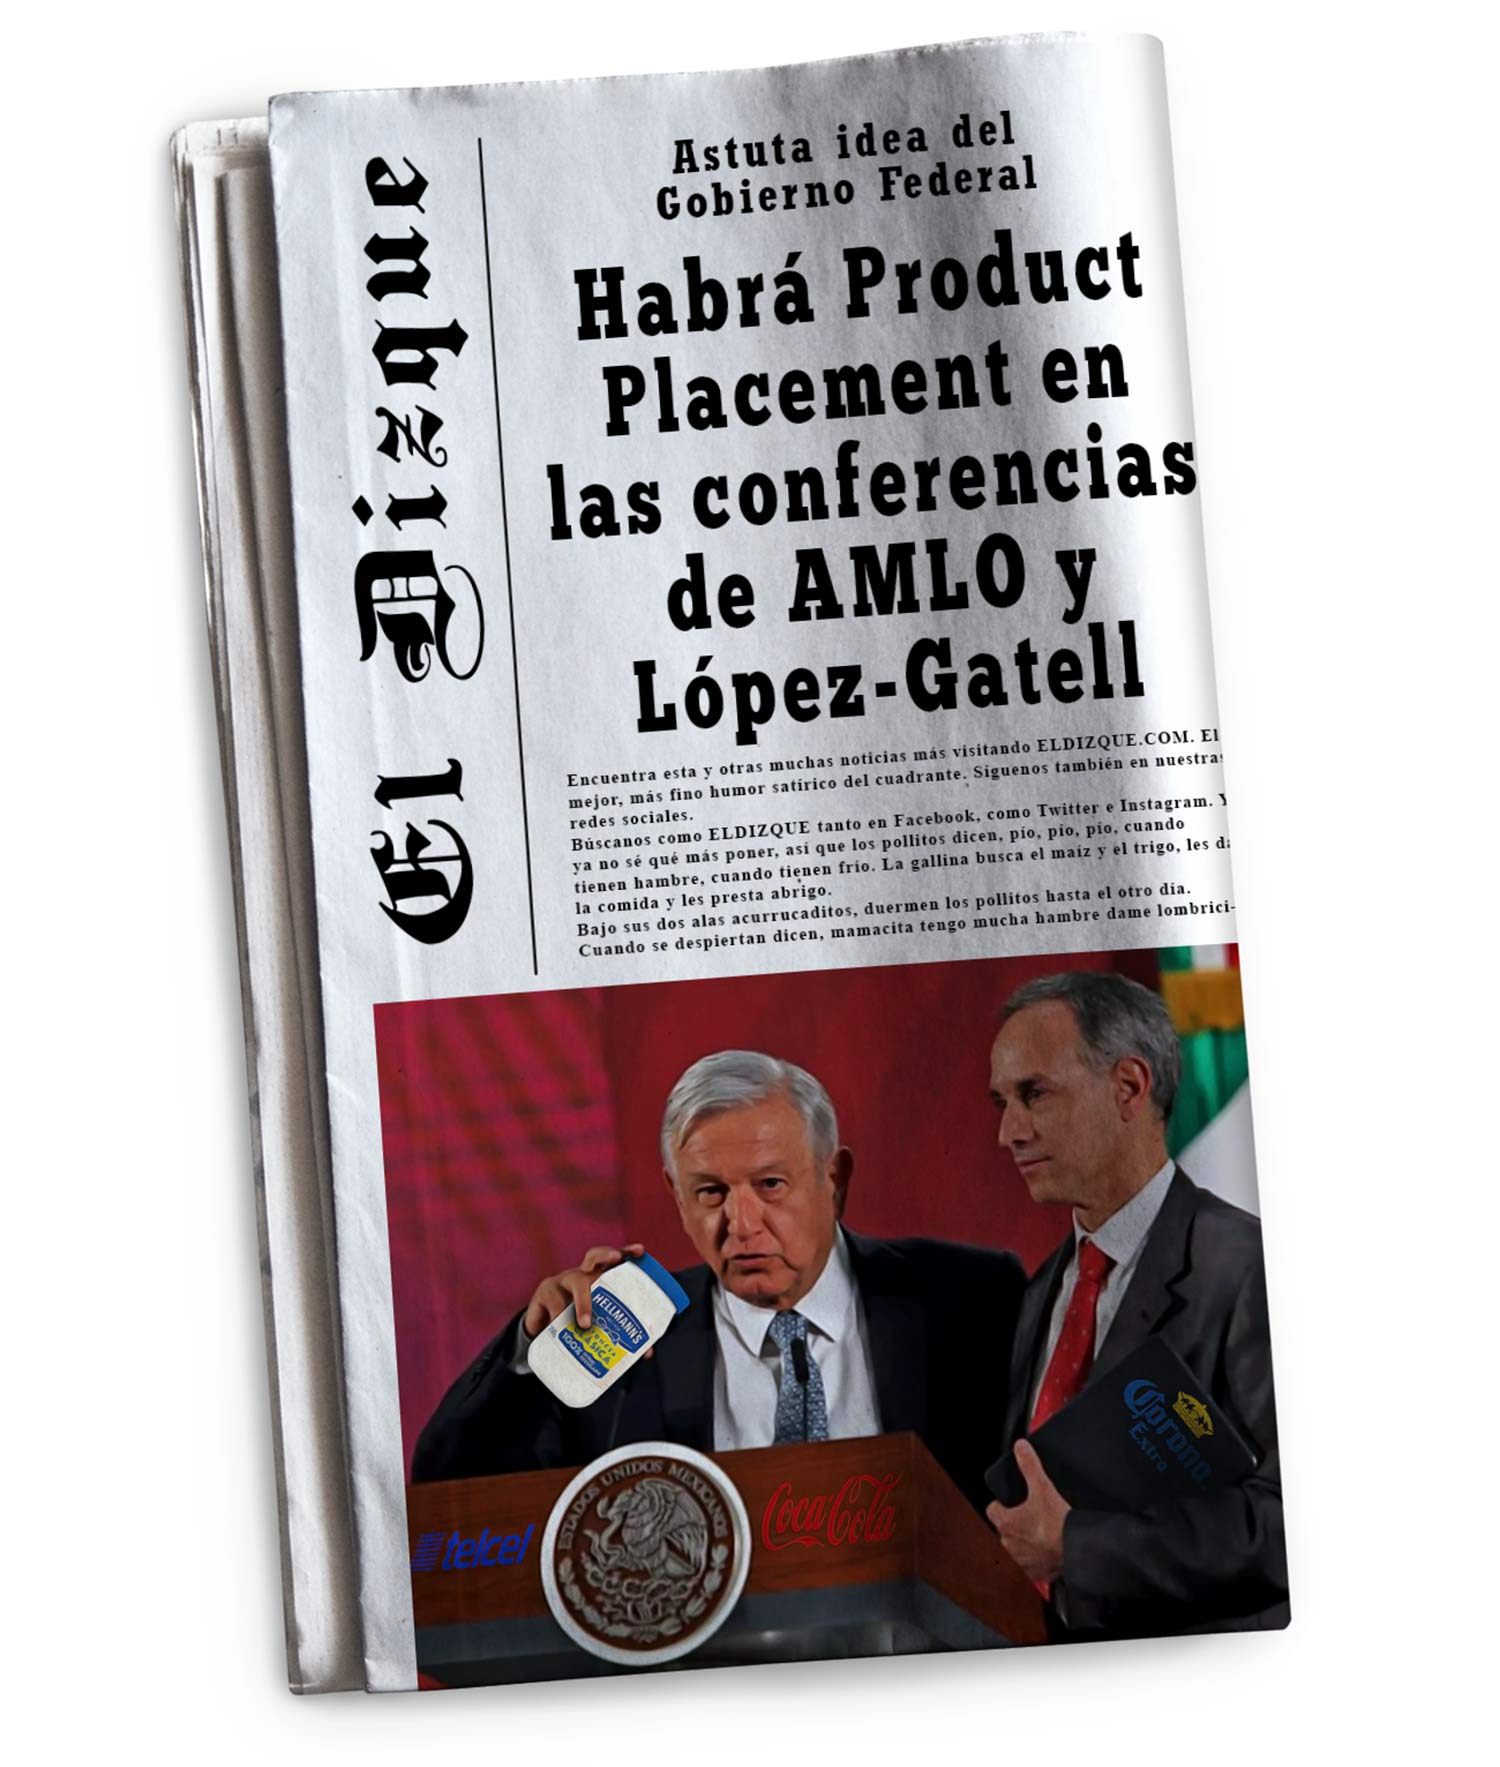 Habrá Product Placement en las conferencias de AMLO y López-Gatell 7